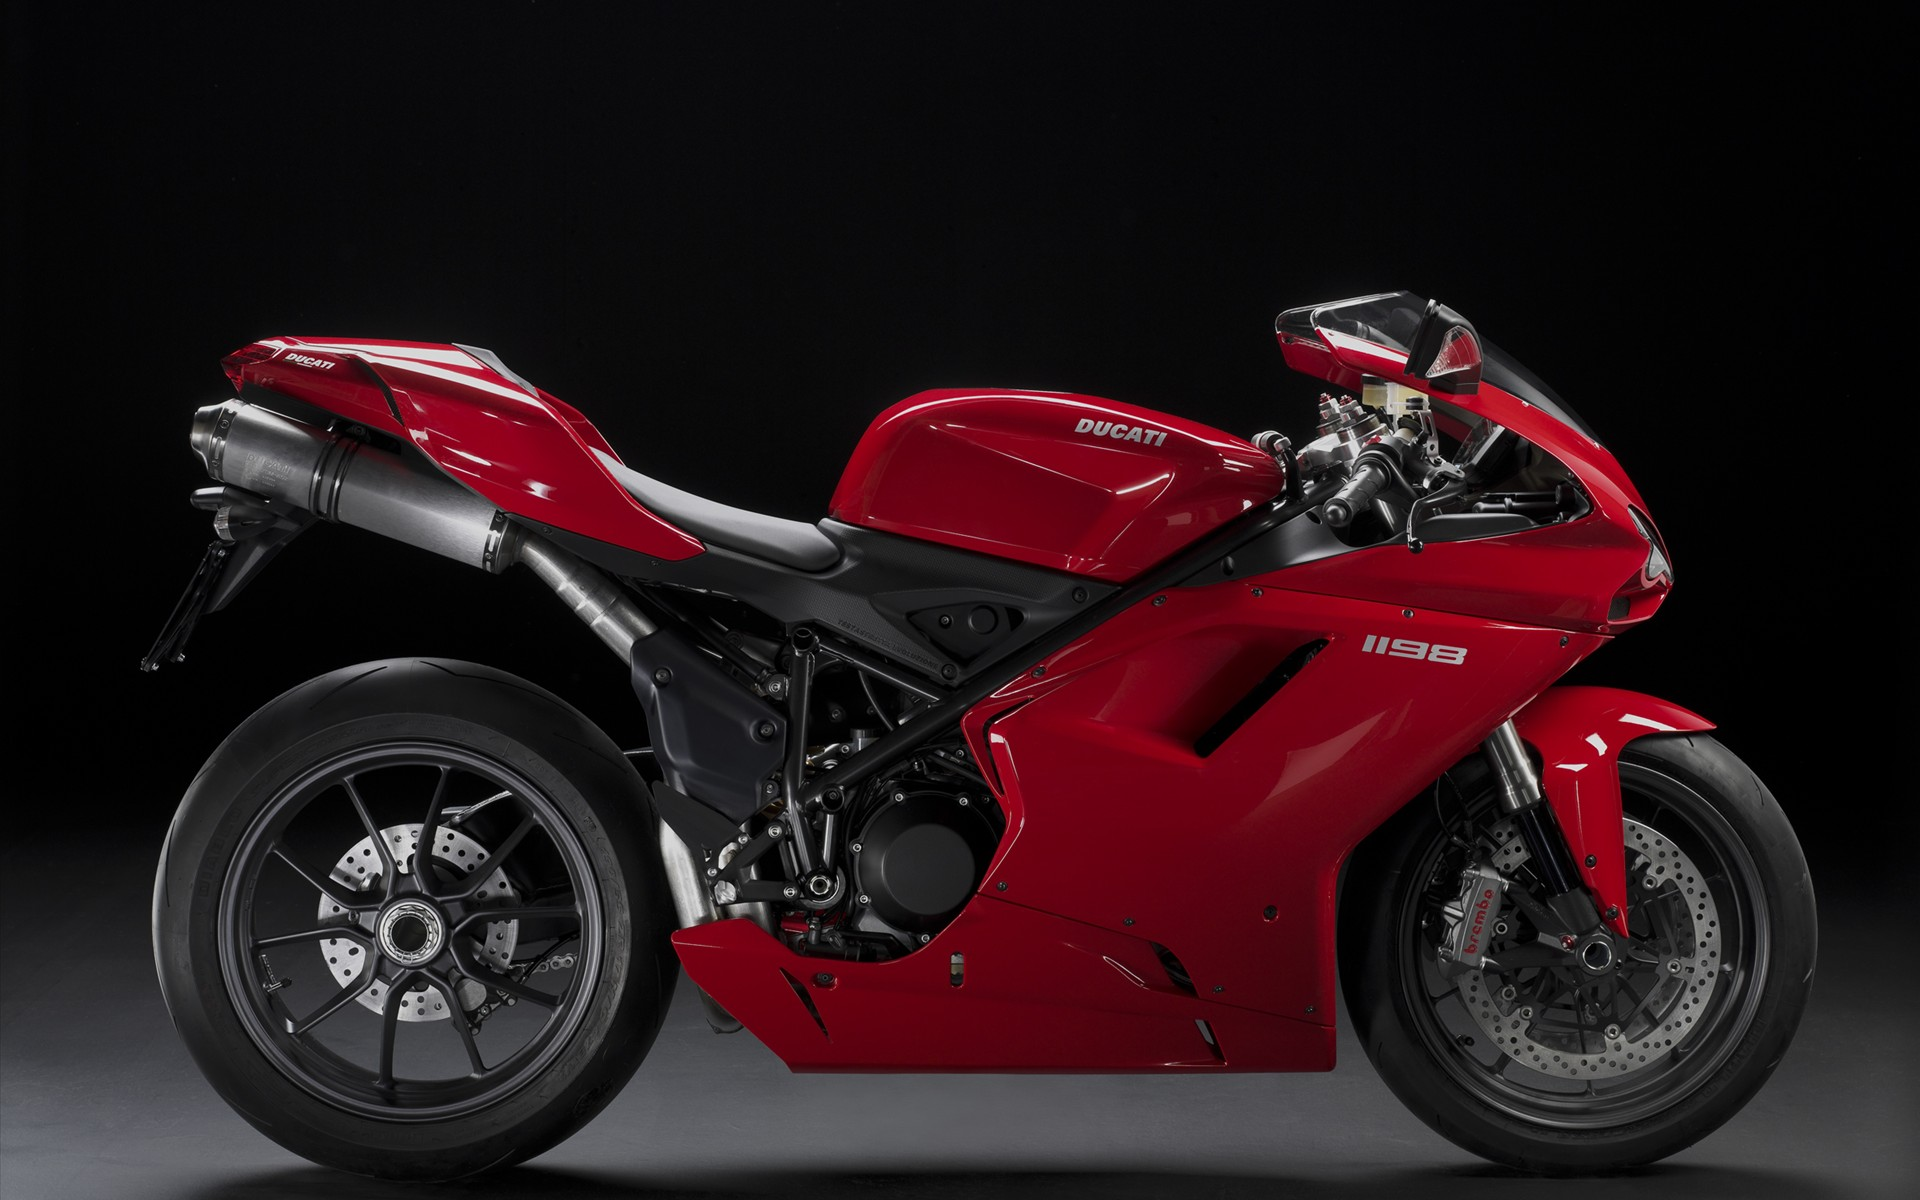 Ducati 1198 Super Bike 198.18 Kb